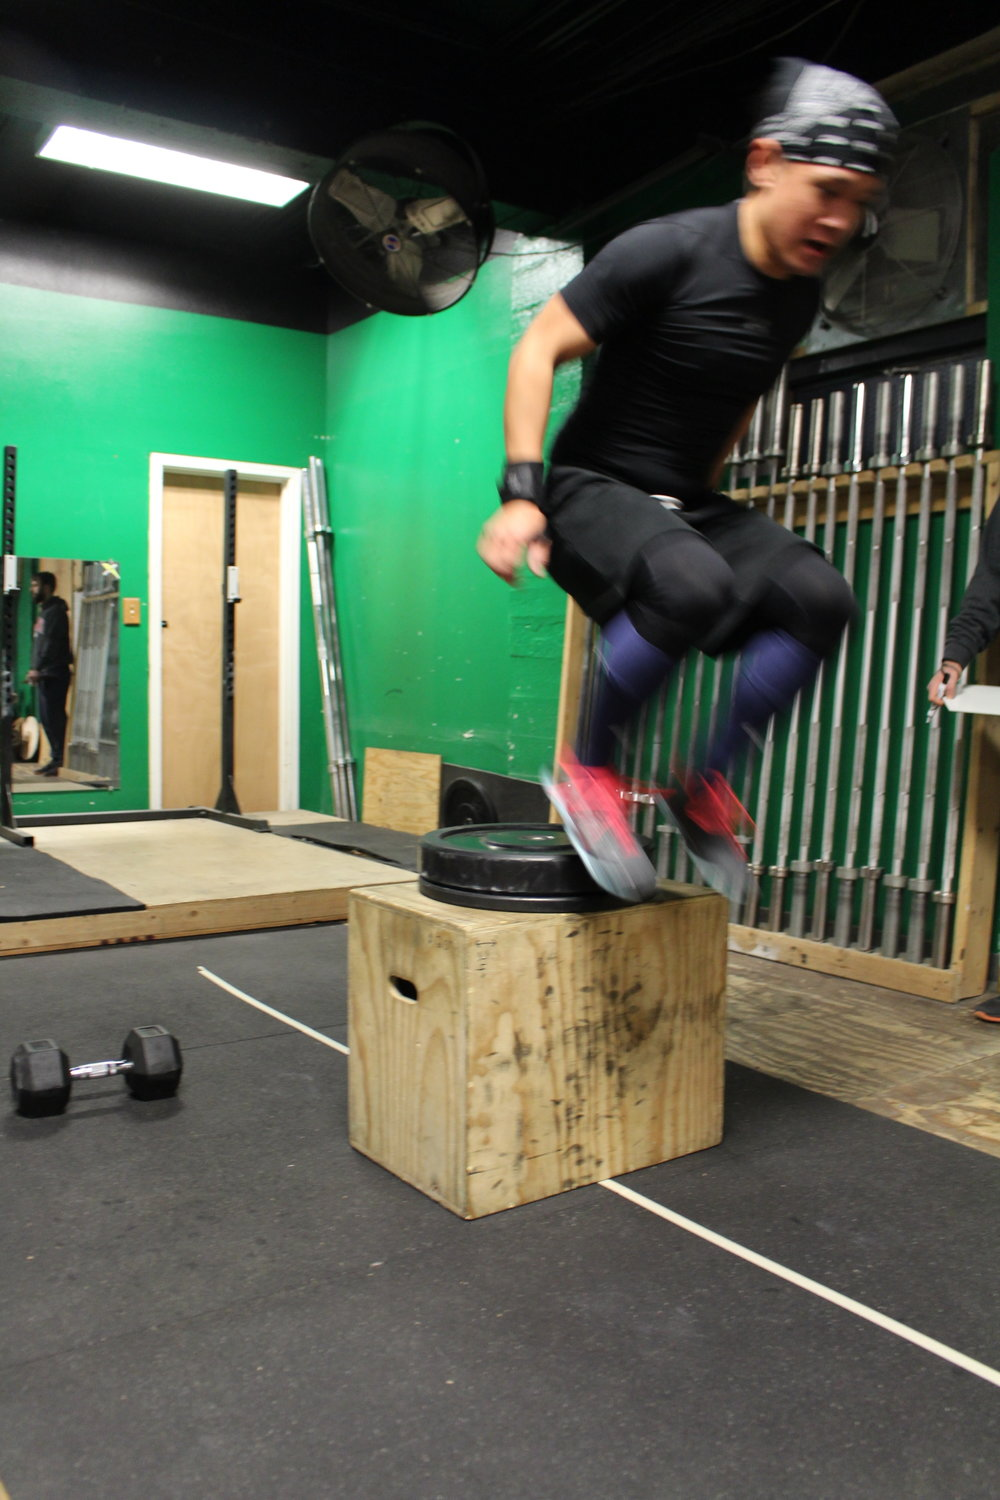 Aaron jumping right into Tuesday!